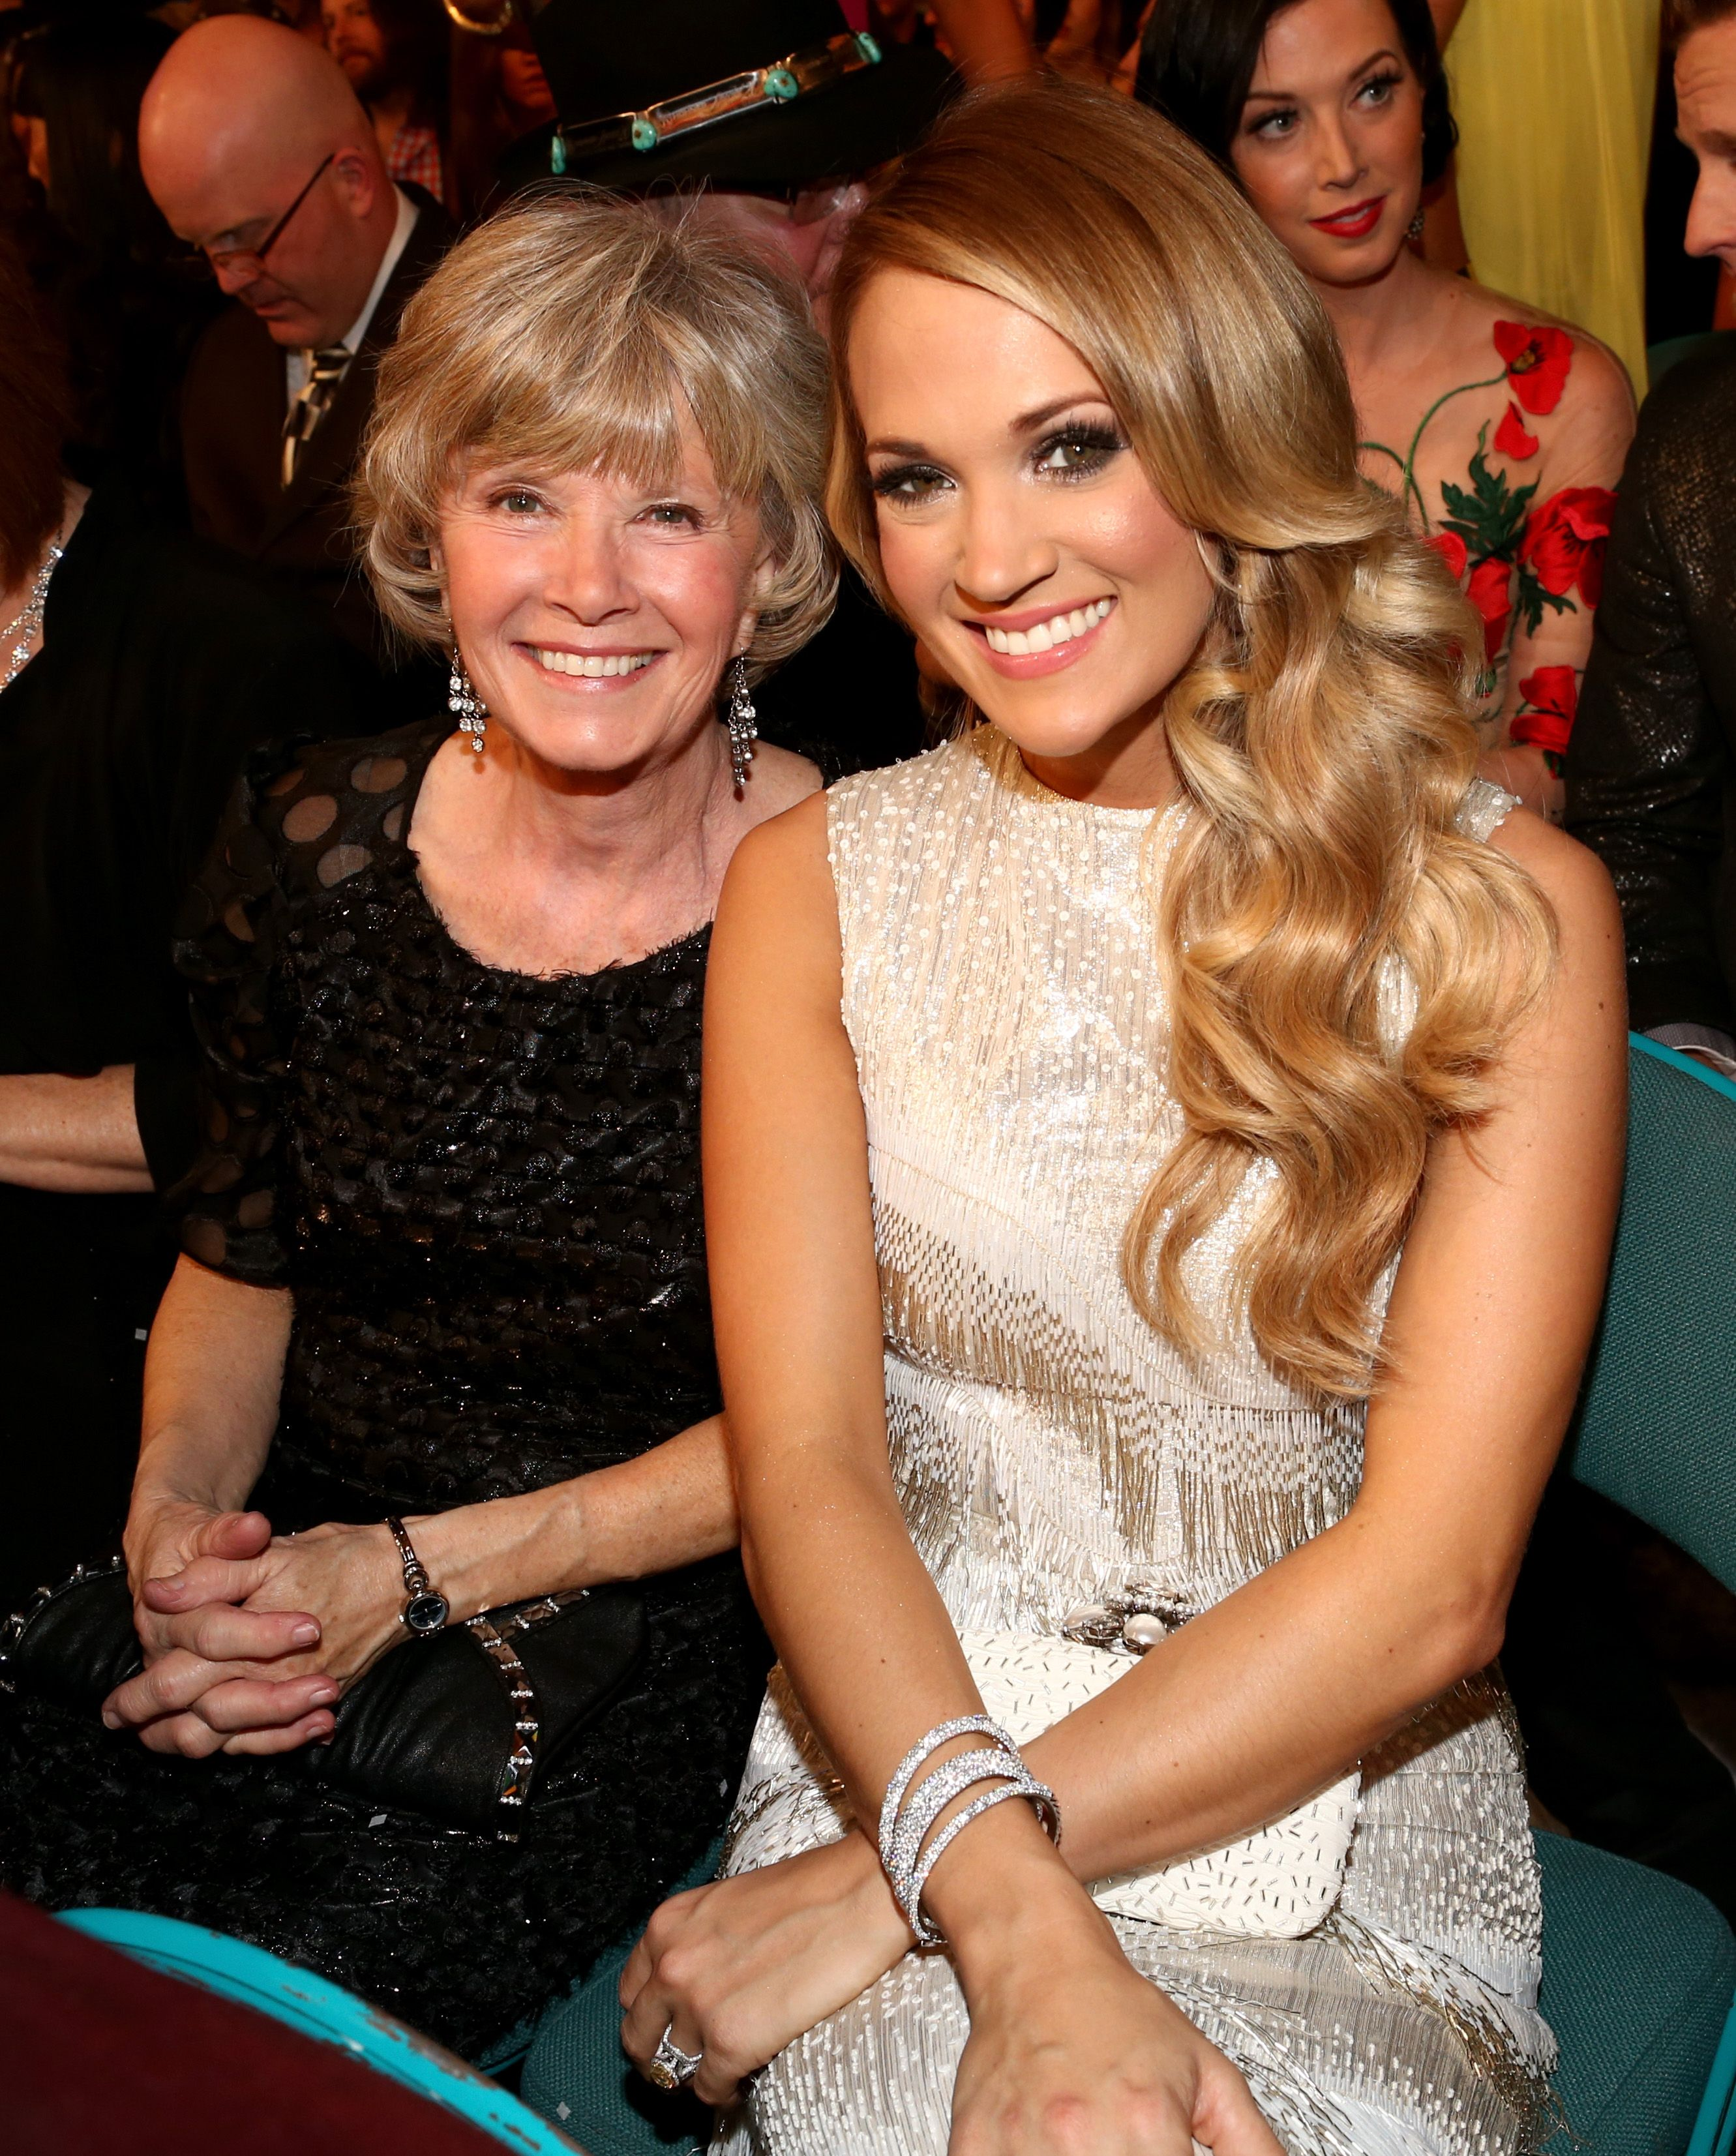 Carrie Underwood and Carole Underwood at the 49th Annual Academy of Country Music Awards at the MGM Grand Garden Arena on April 6, 2014 | Photo: Getty Images